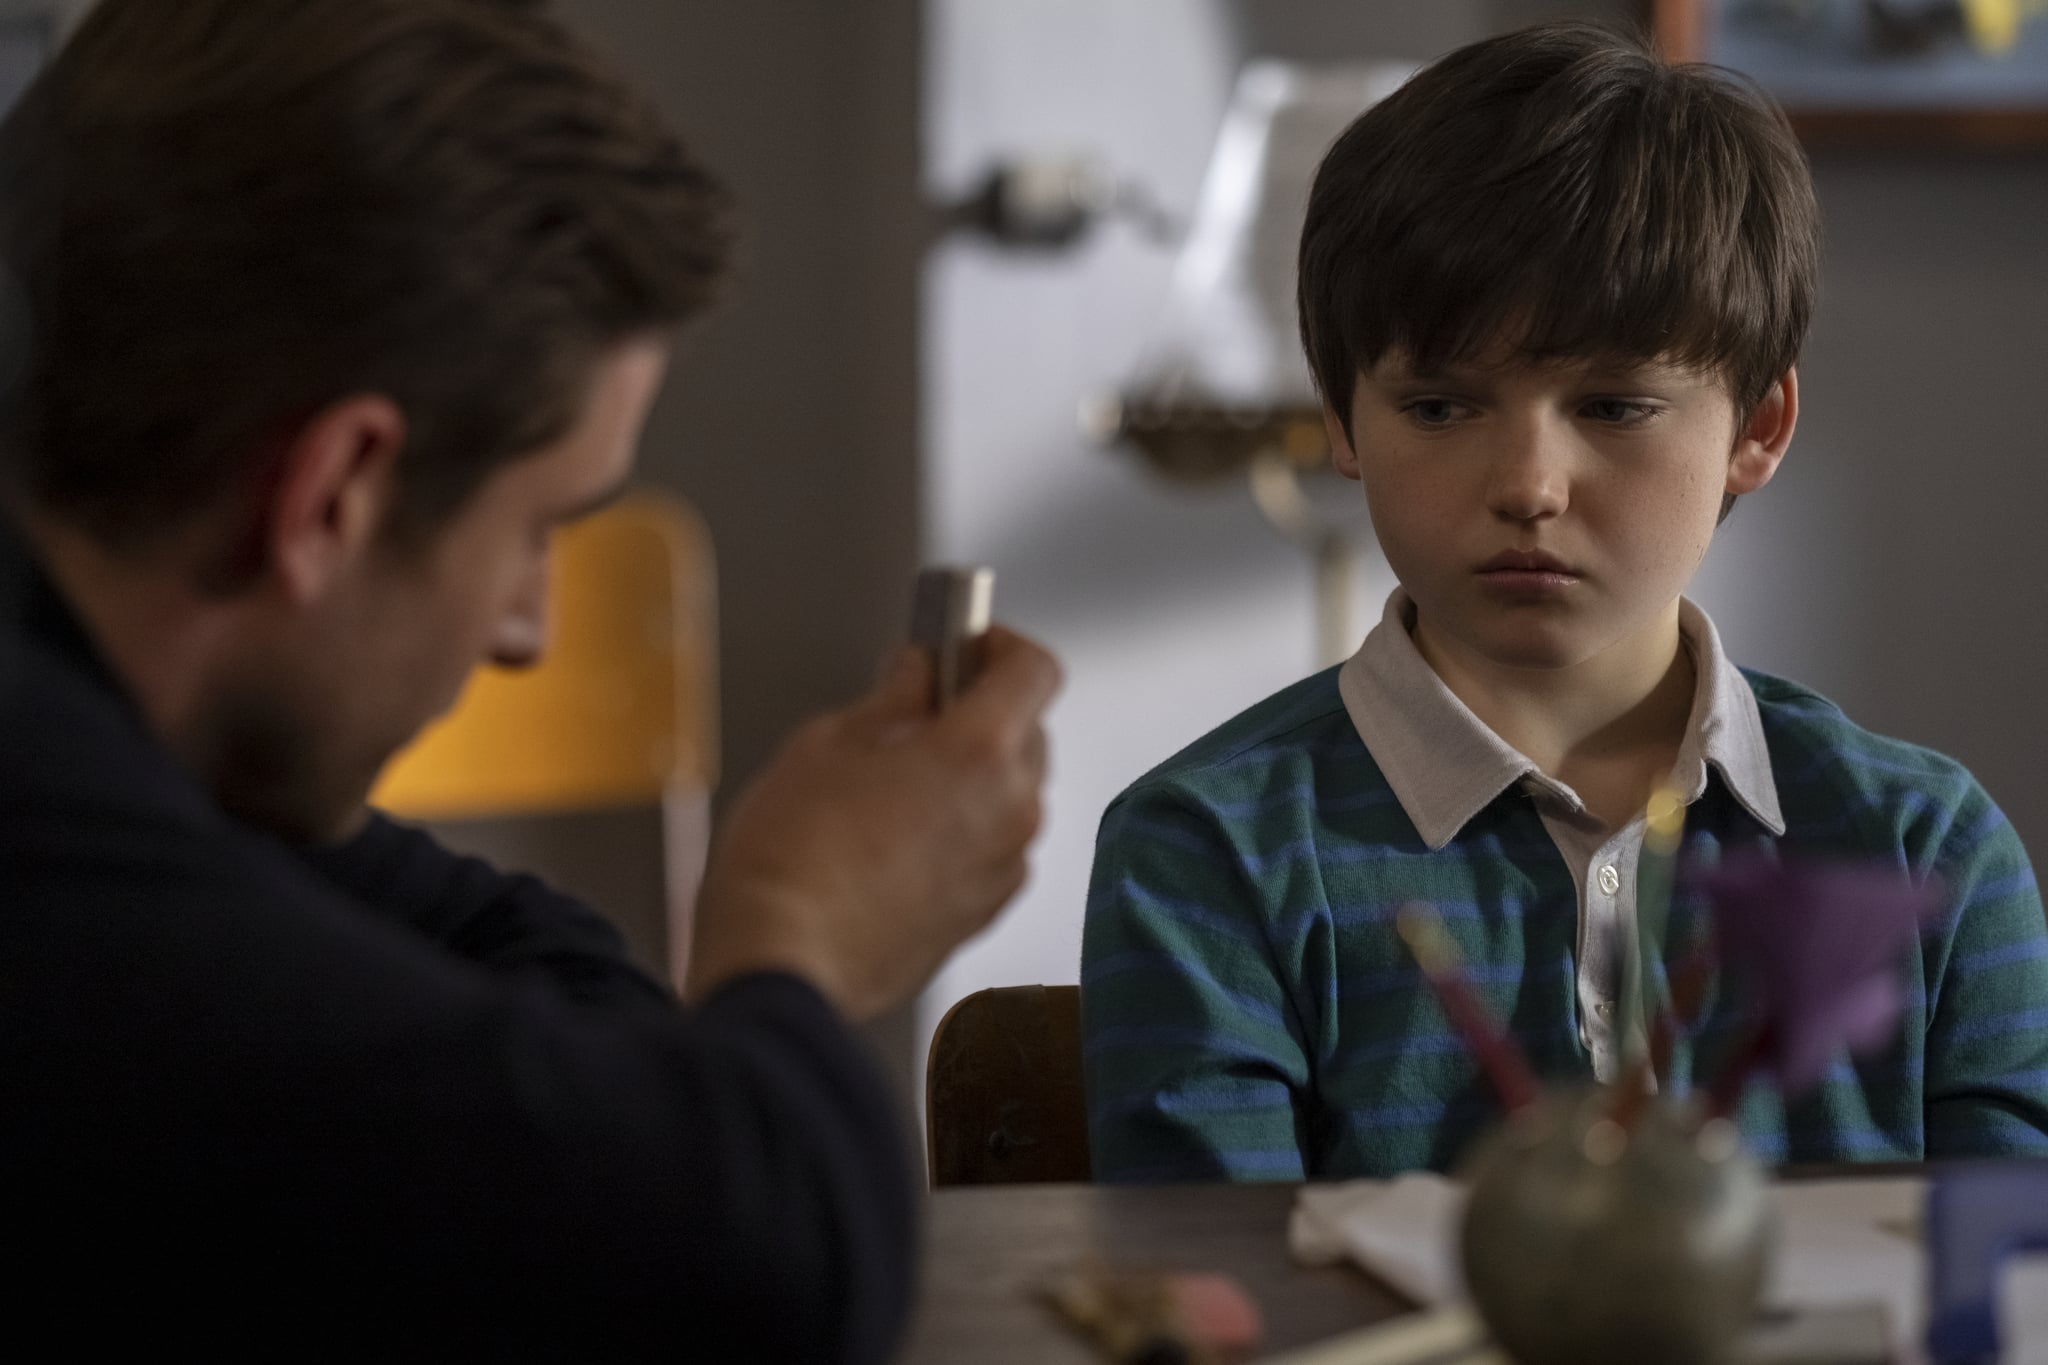 THE HAUNTING OF BLY MANOR (L to R) OLIVER JACKSON-COHEN as PETER QUINT and BENJAMIN EVAN AINSWORTH as MILES in THE HAUNTING OF BLY MANOR Cr. EIKE SCHROTER/NETFLIX  2020